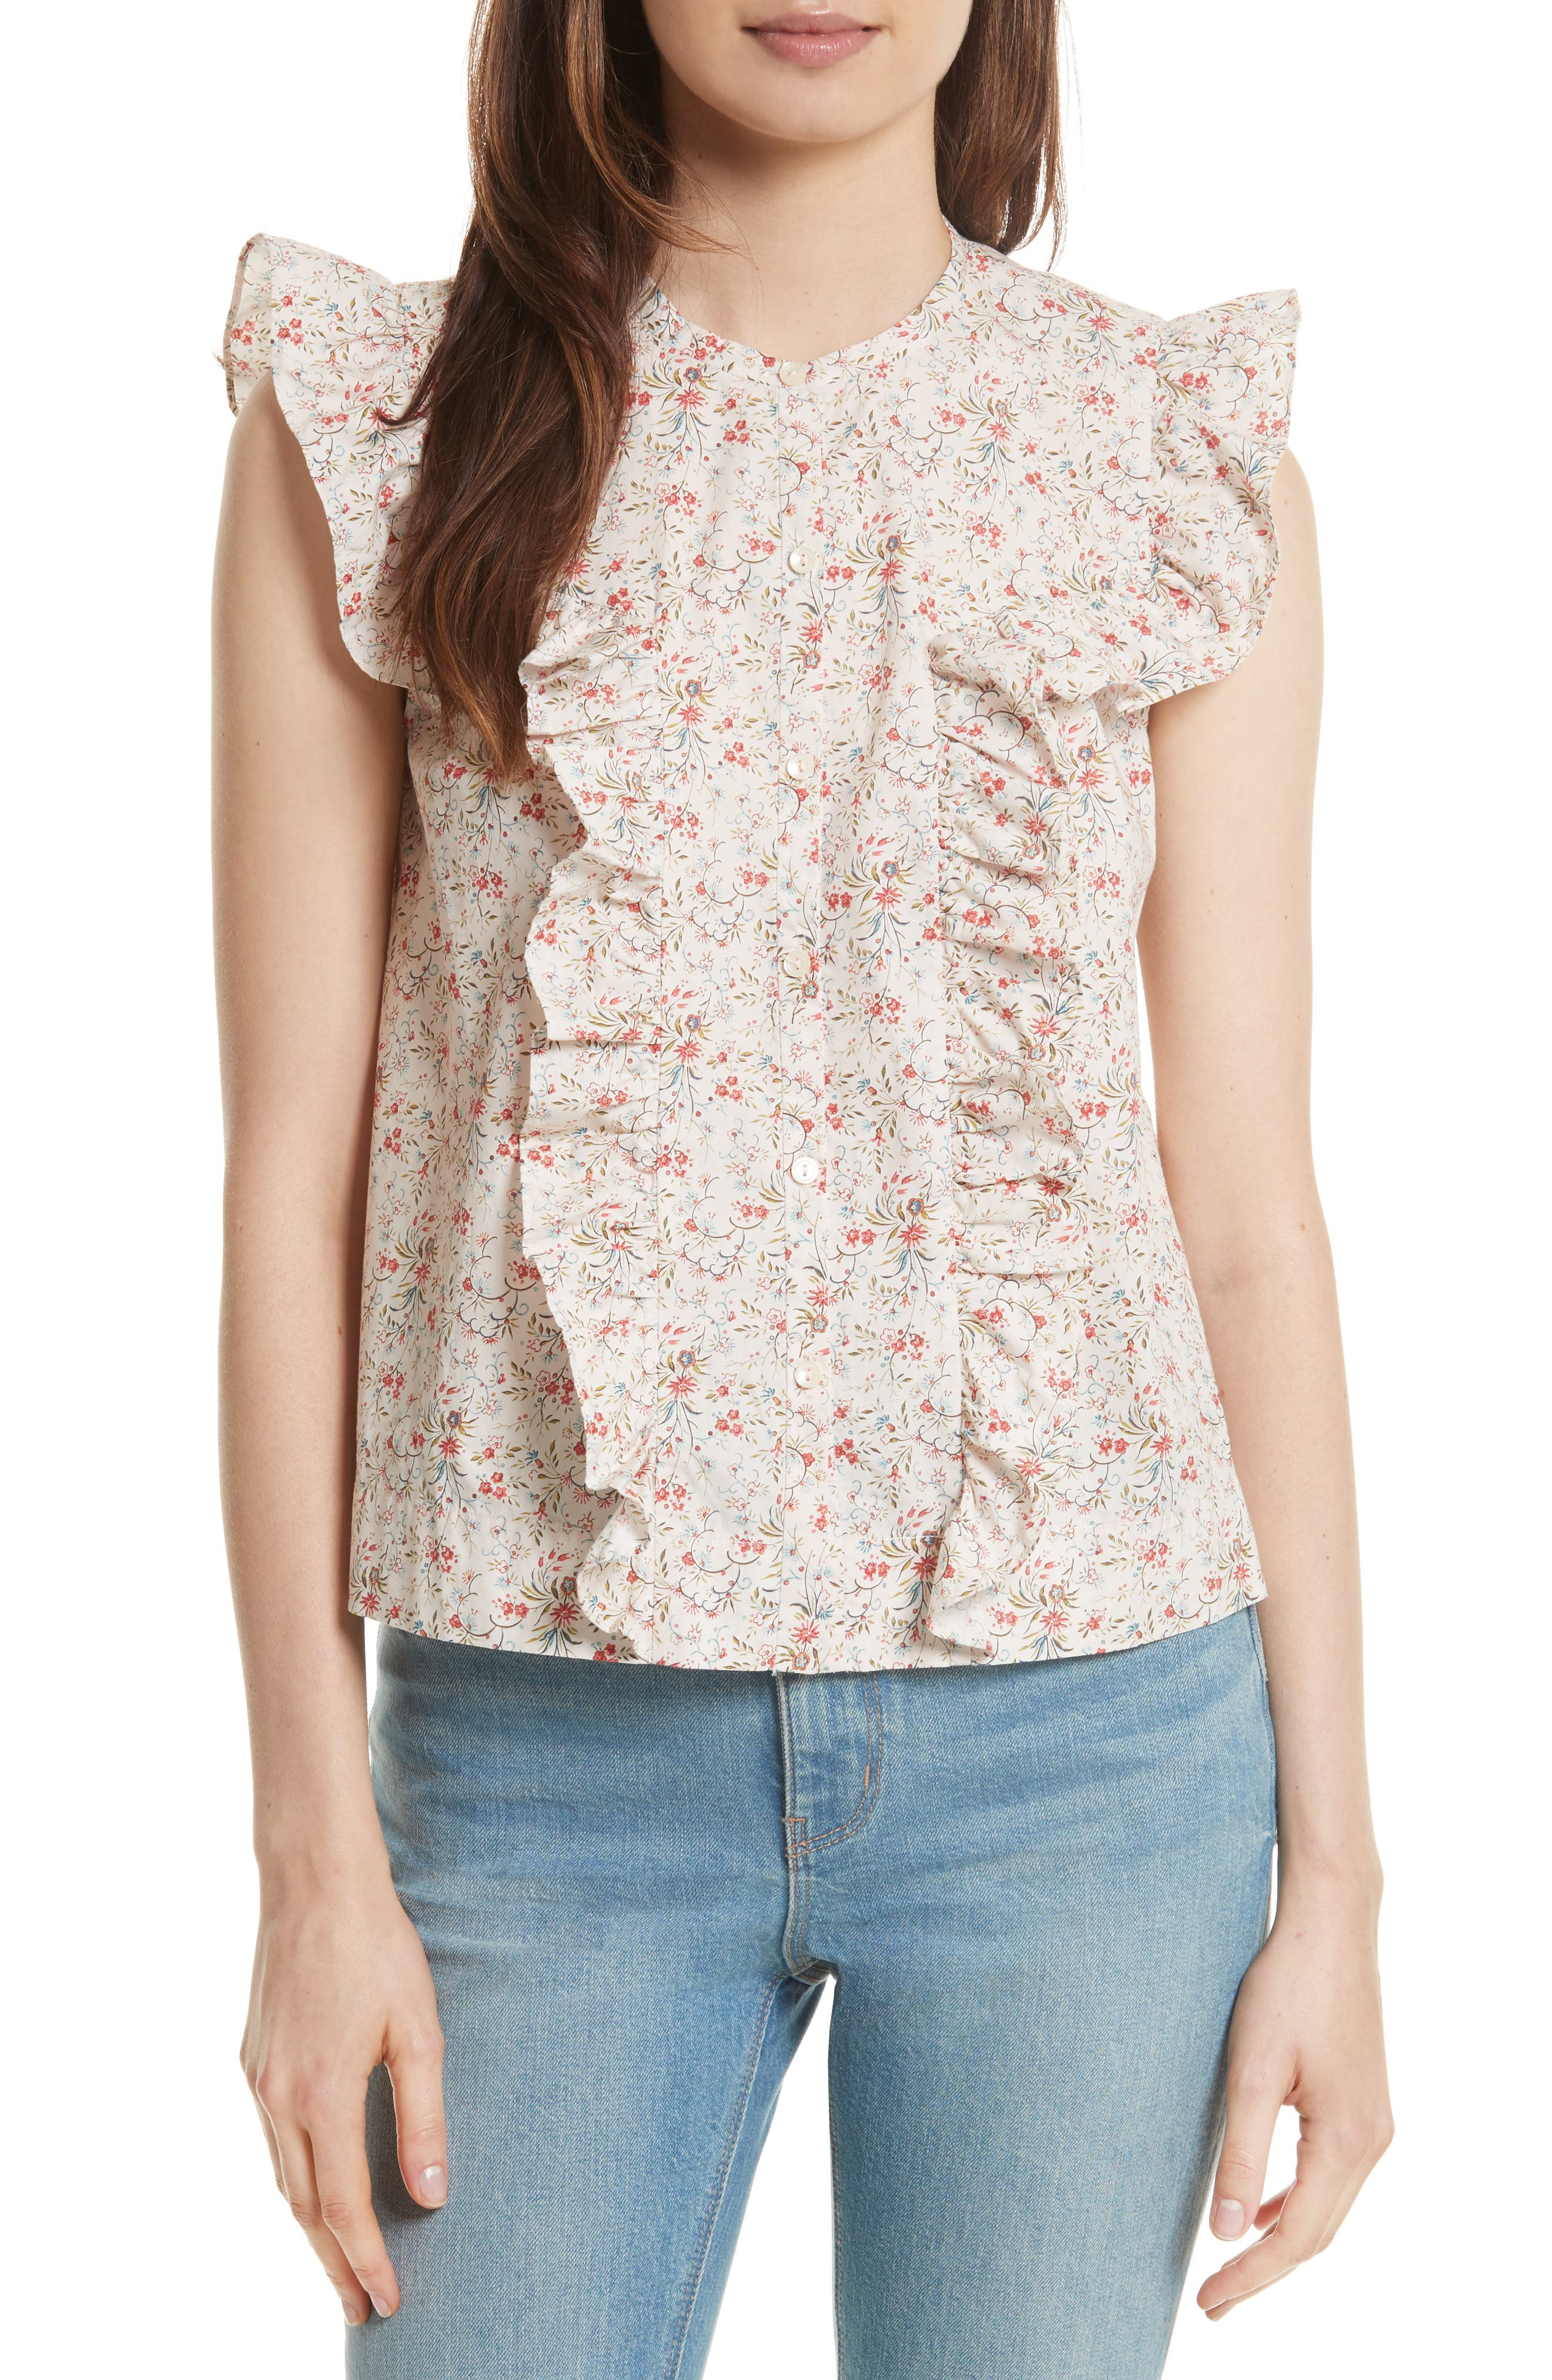 Alternate Image 1 Selected - La Vie Rebecca Taylor Brittany Sleeveless Floral Blouse